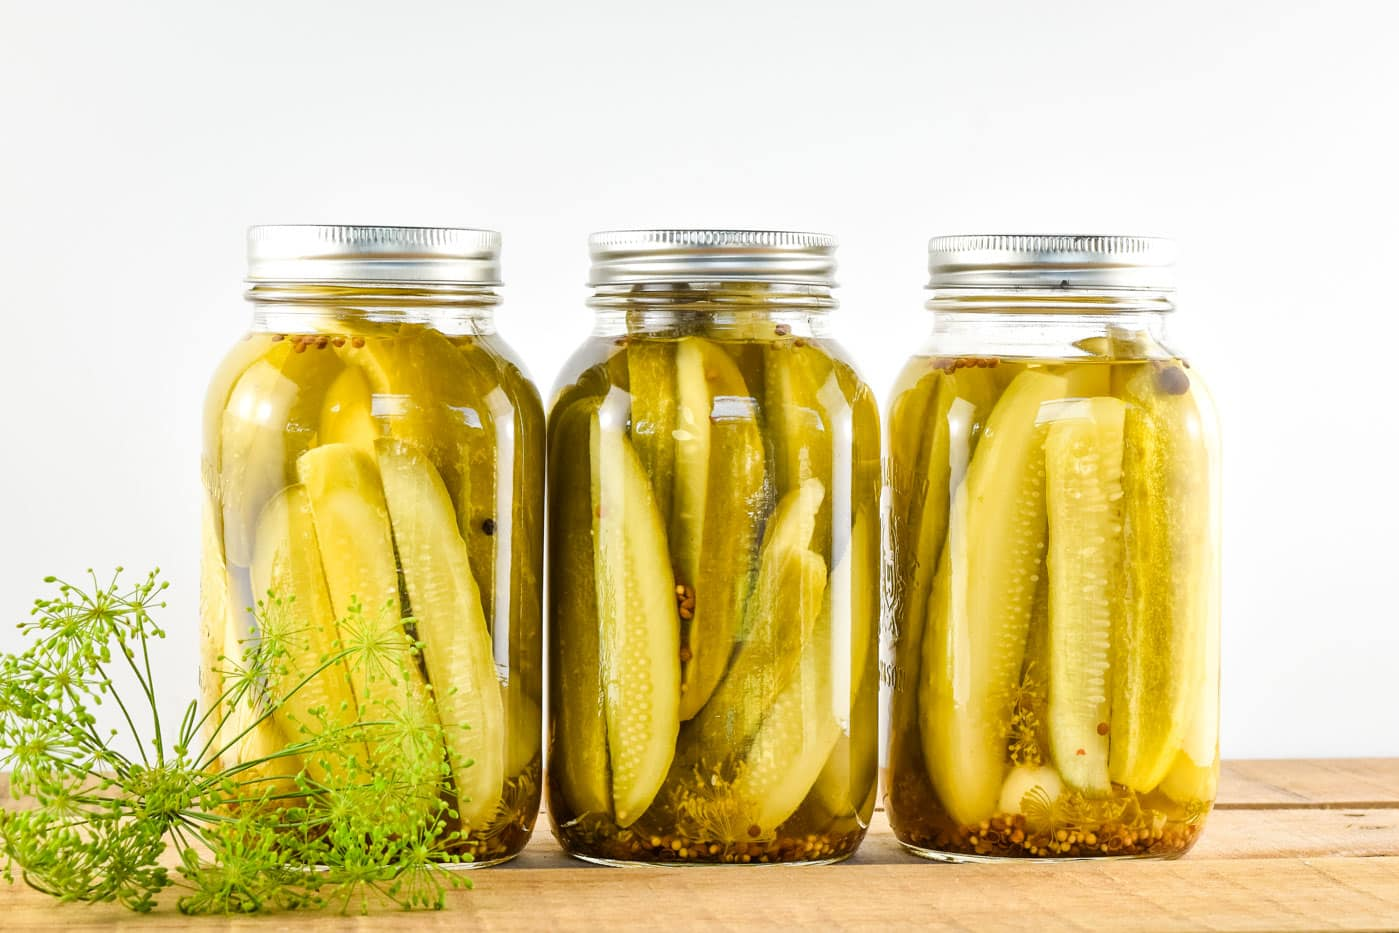 Homemade dill pickle spears in quart mason jars on a wooden table with fresh dill next to the jars.